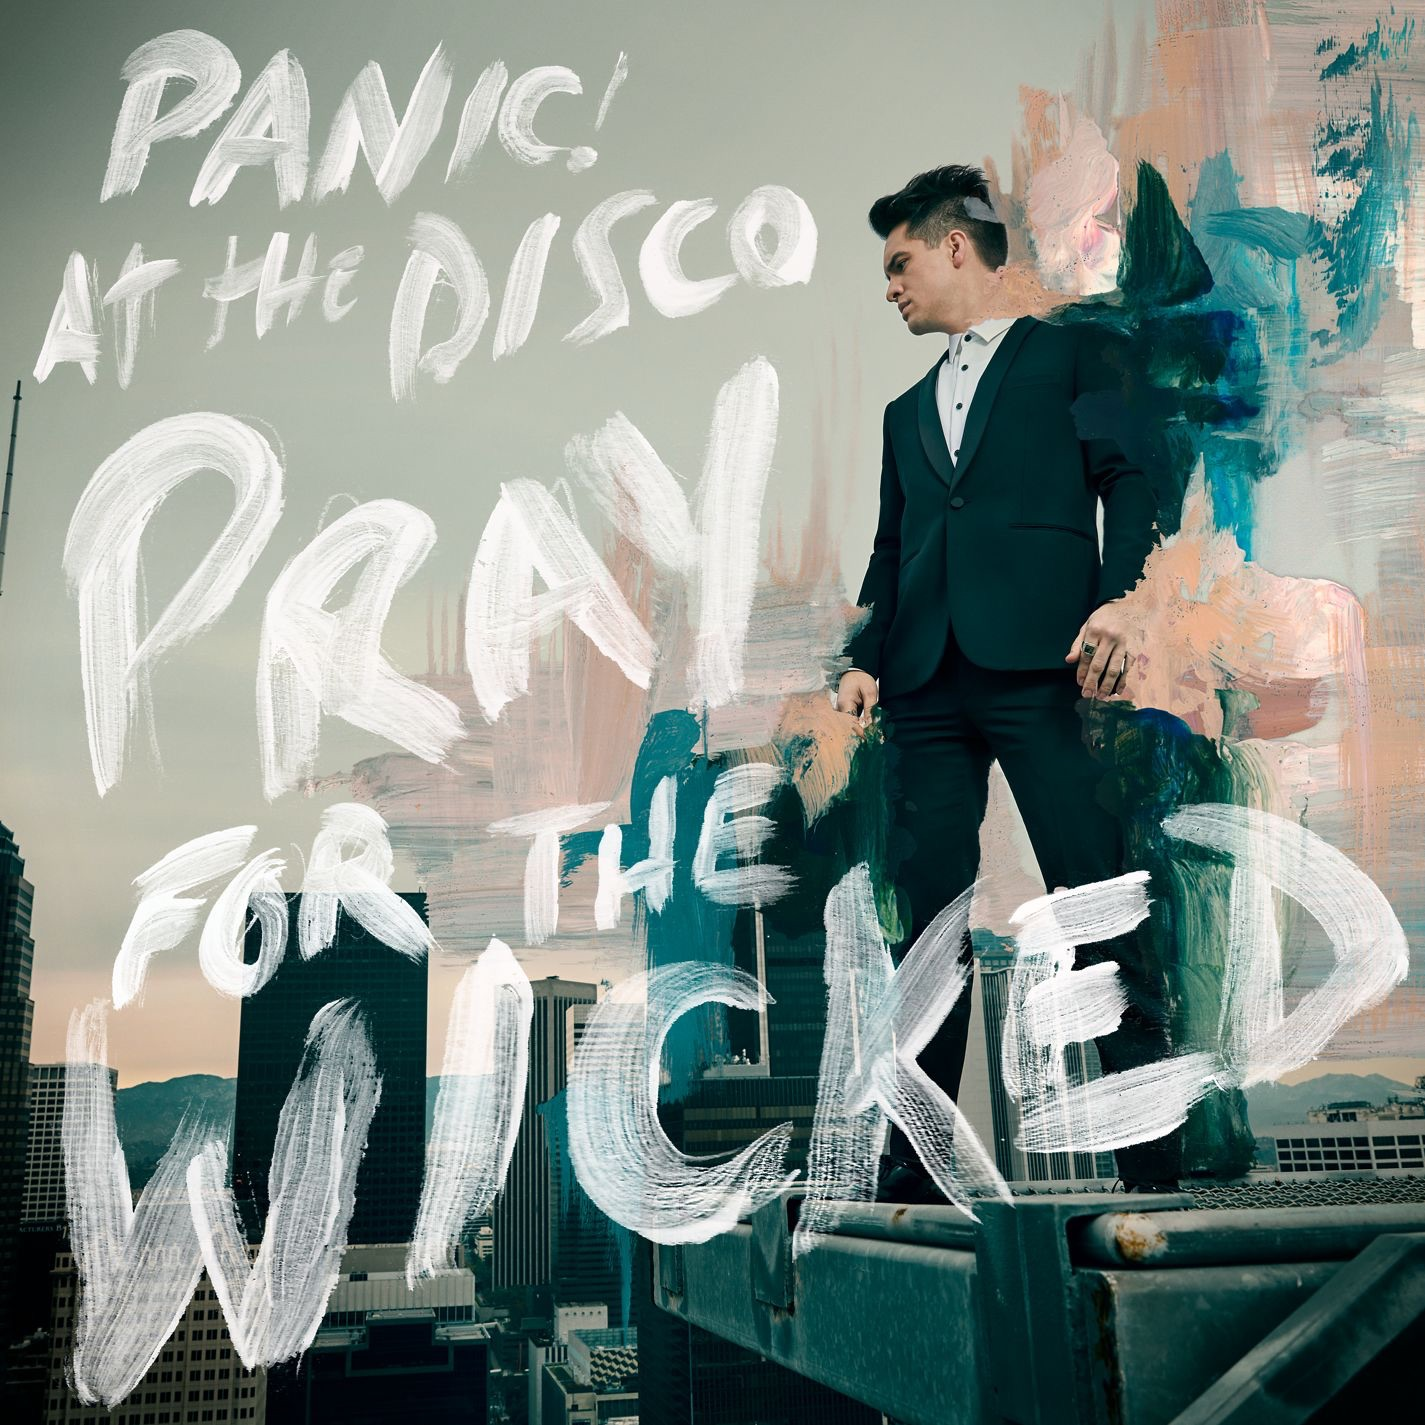 Panic At The Disco Hey Look Ma I Made It: Panic! At The Disco Music